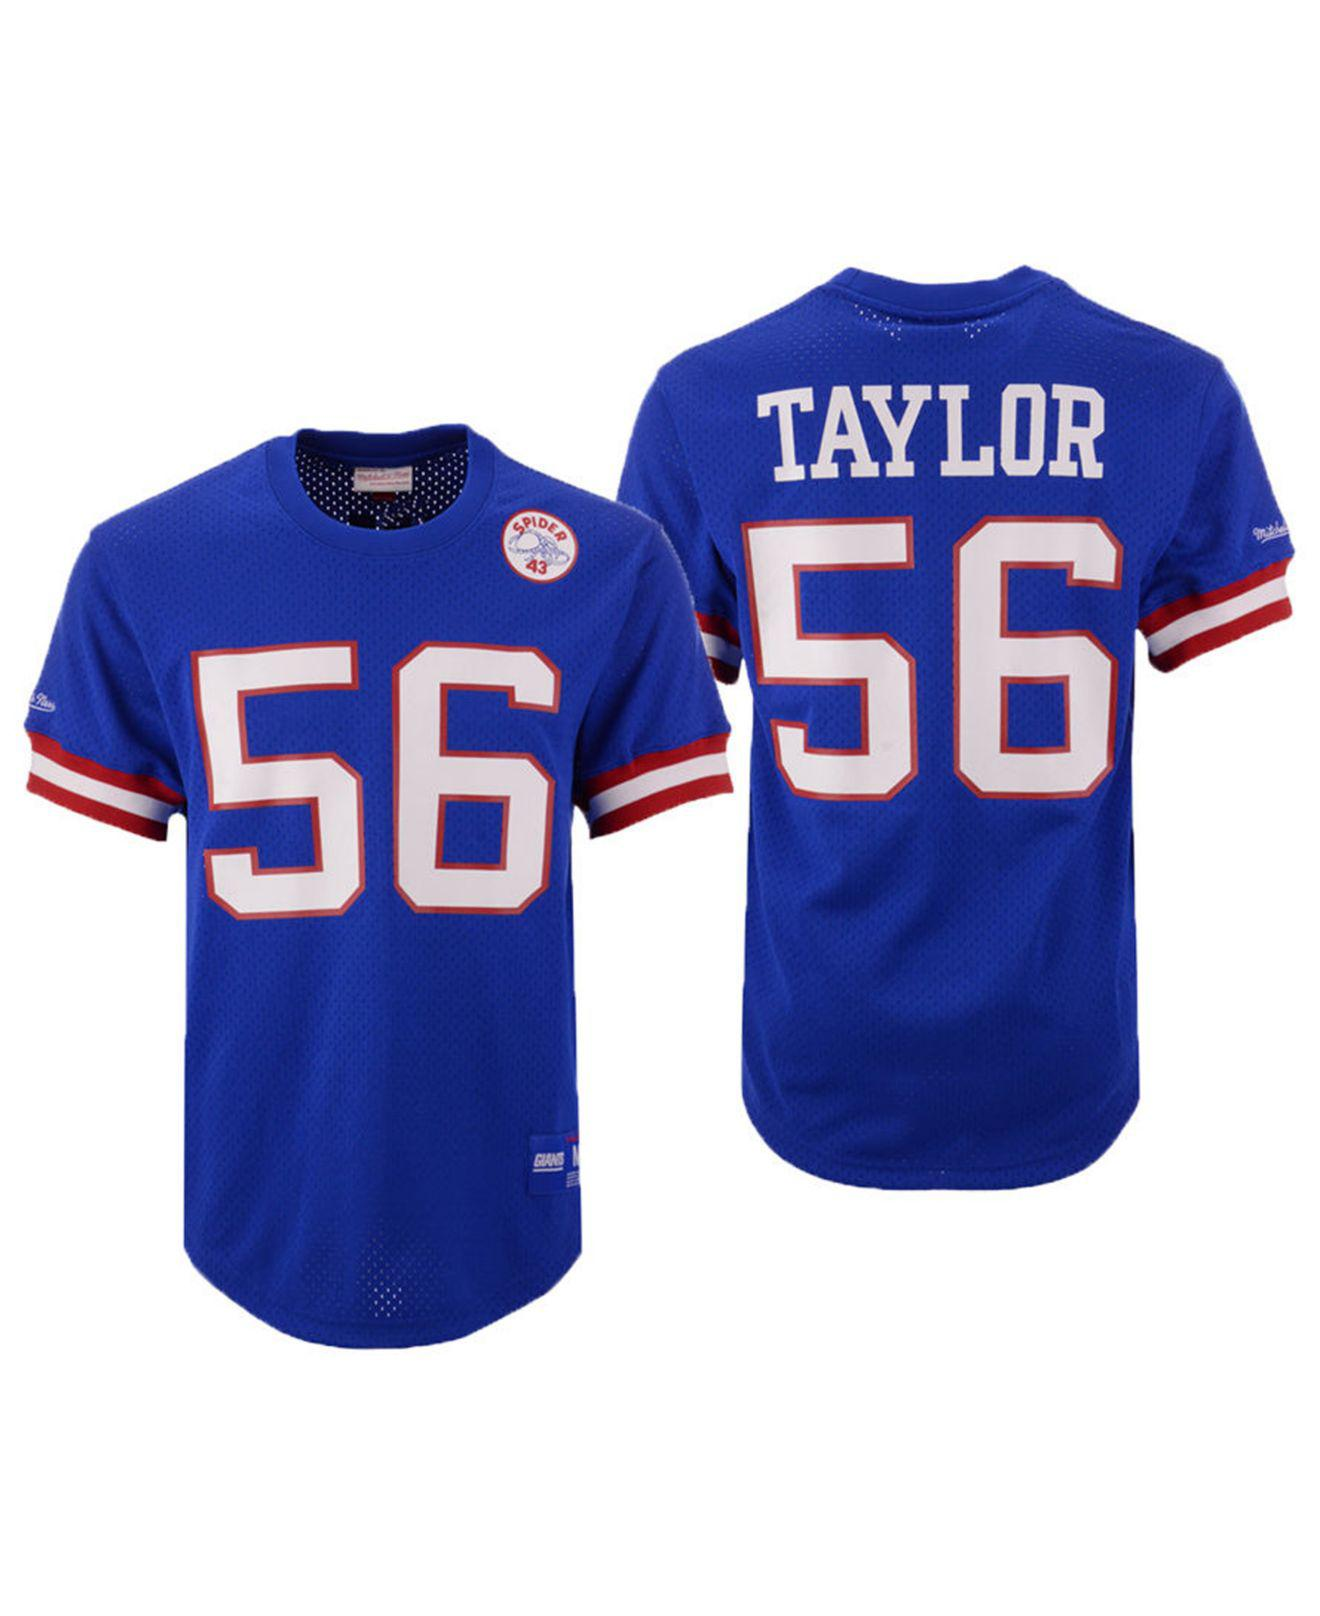 6b2856fdb Mitchell   Ness. Men s Blue Lawrence Taylor New York Giants Mesh Name And  Number Crewneck Jersey